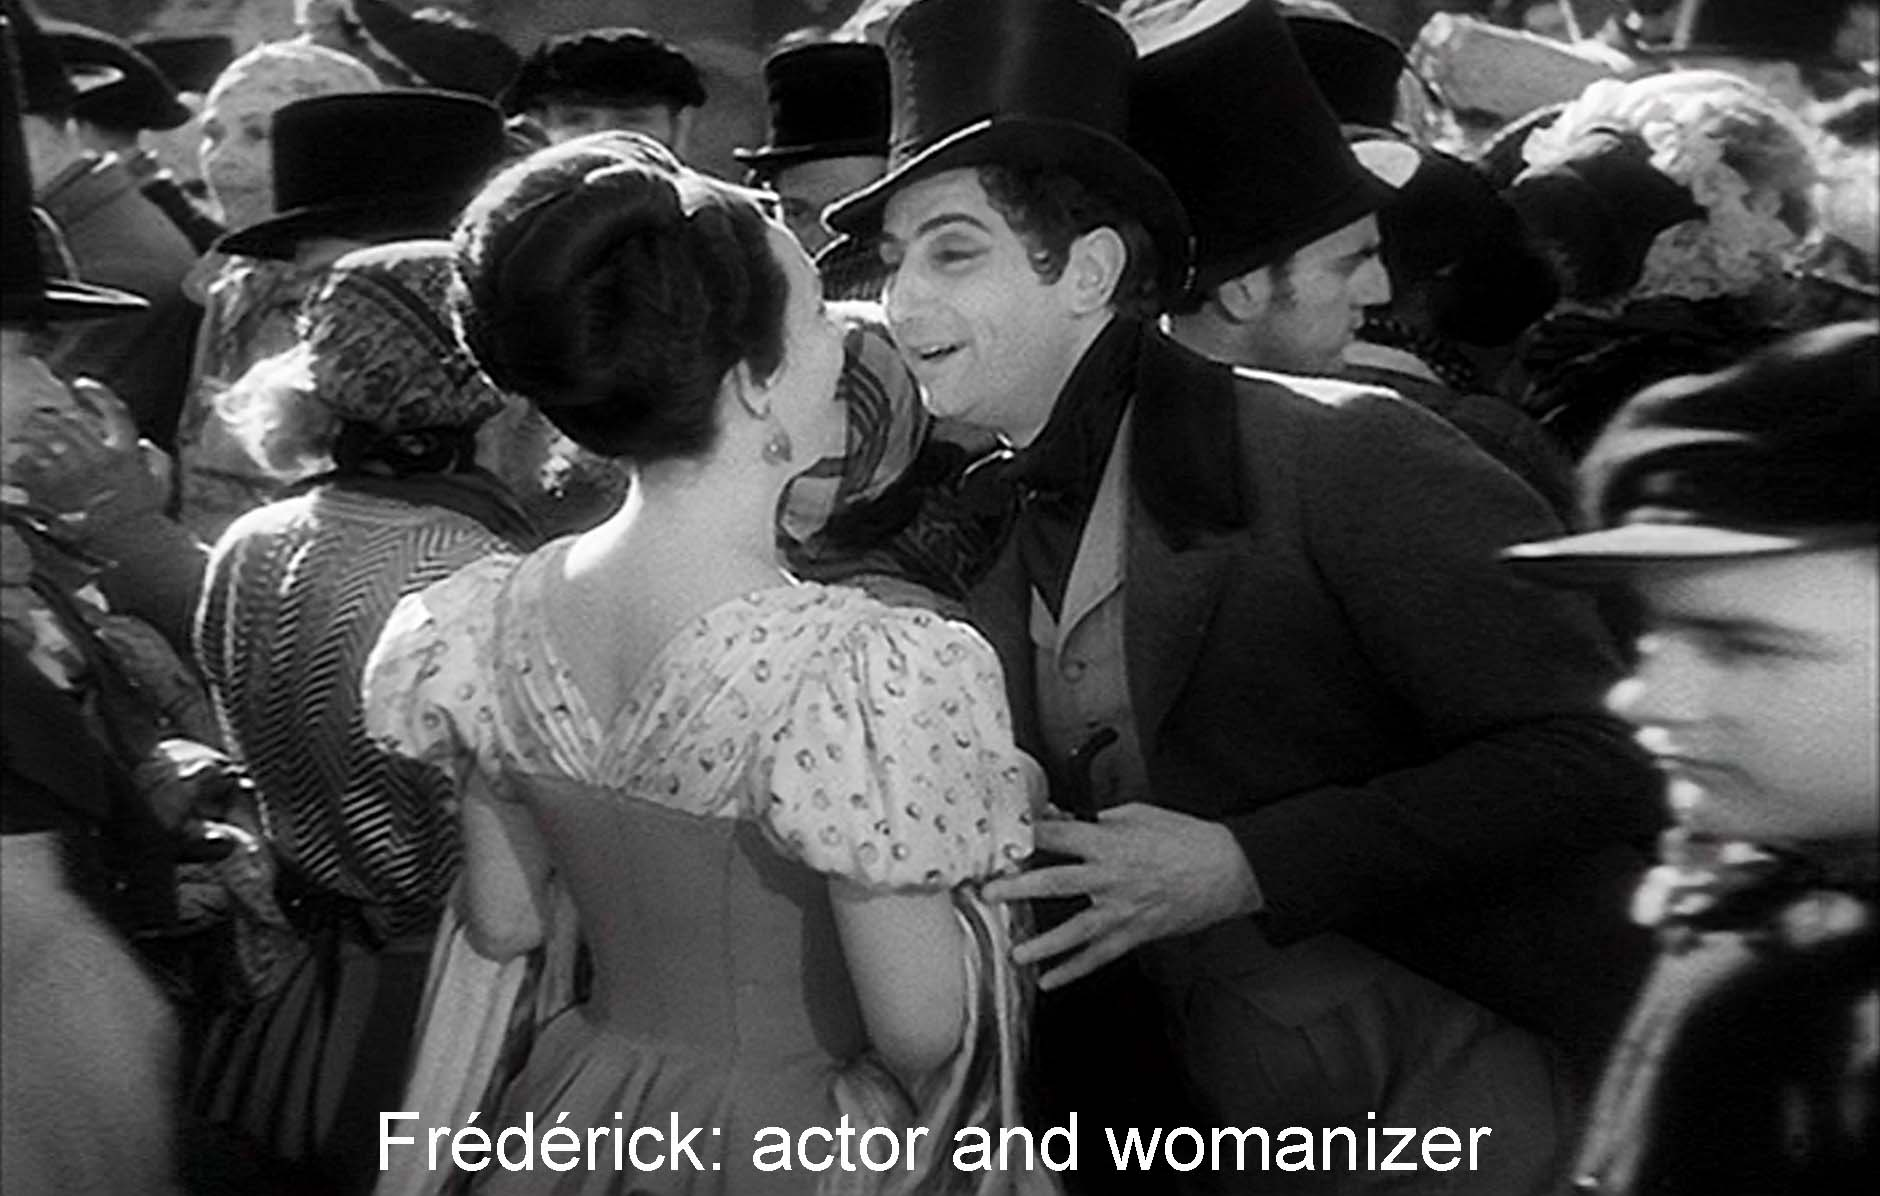 Frédérick: actor and womanizer